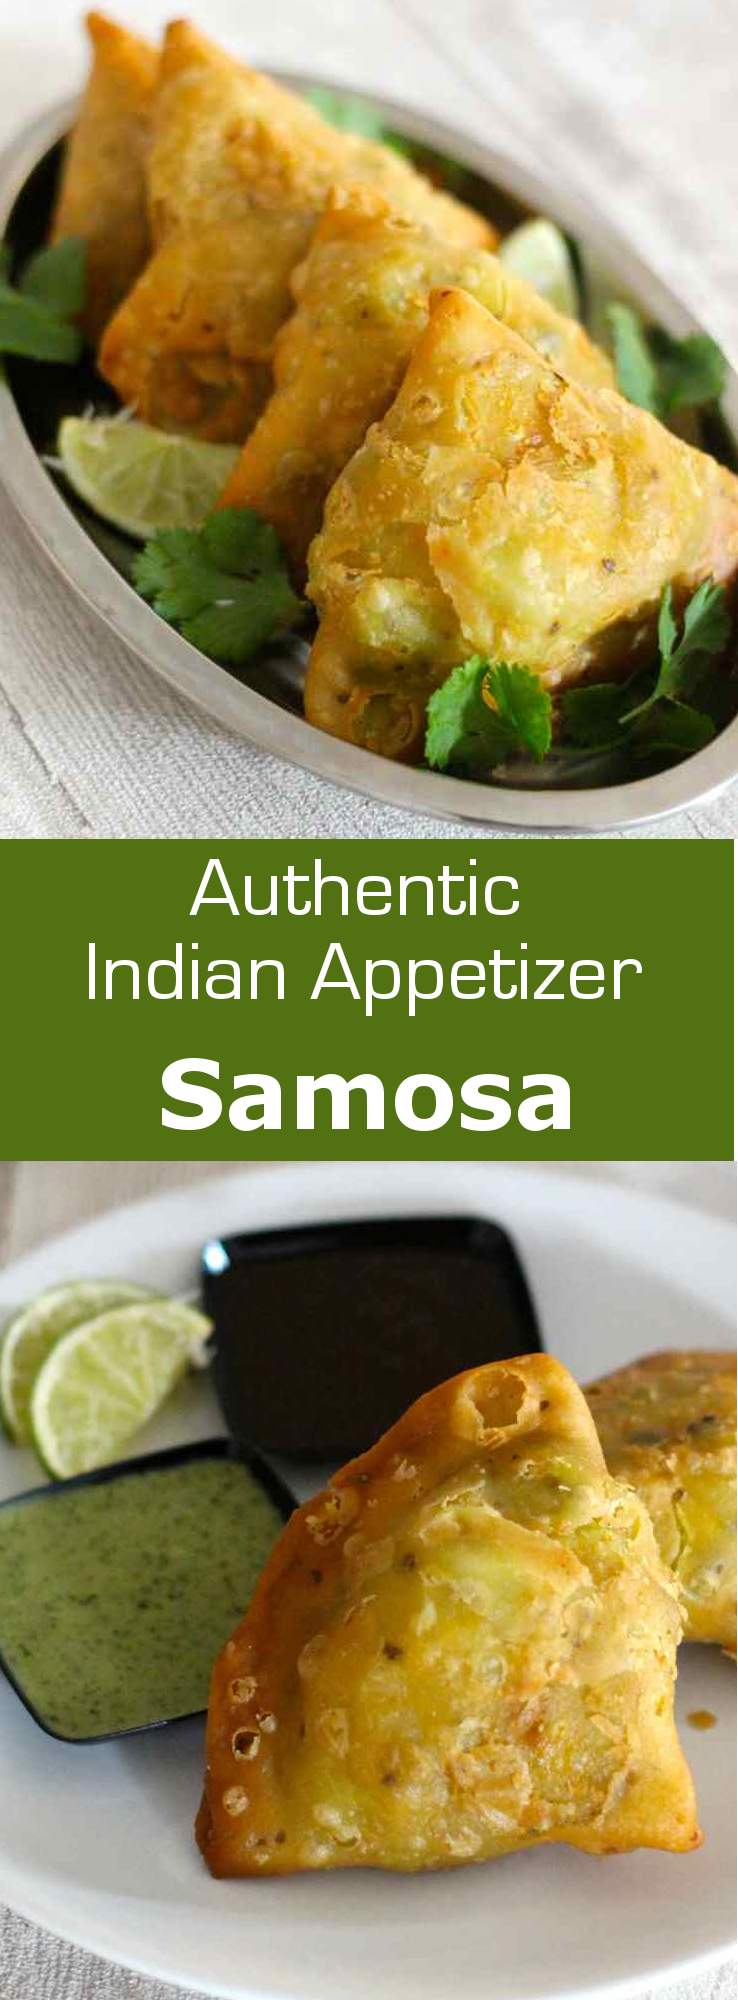 Samosa is a small triangular fried snack from northern India that is traditionally filled with vegetables and spices. #vegetarian #snack #appetizer #india